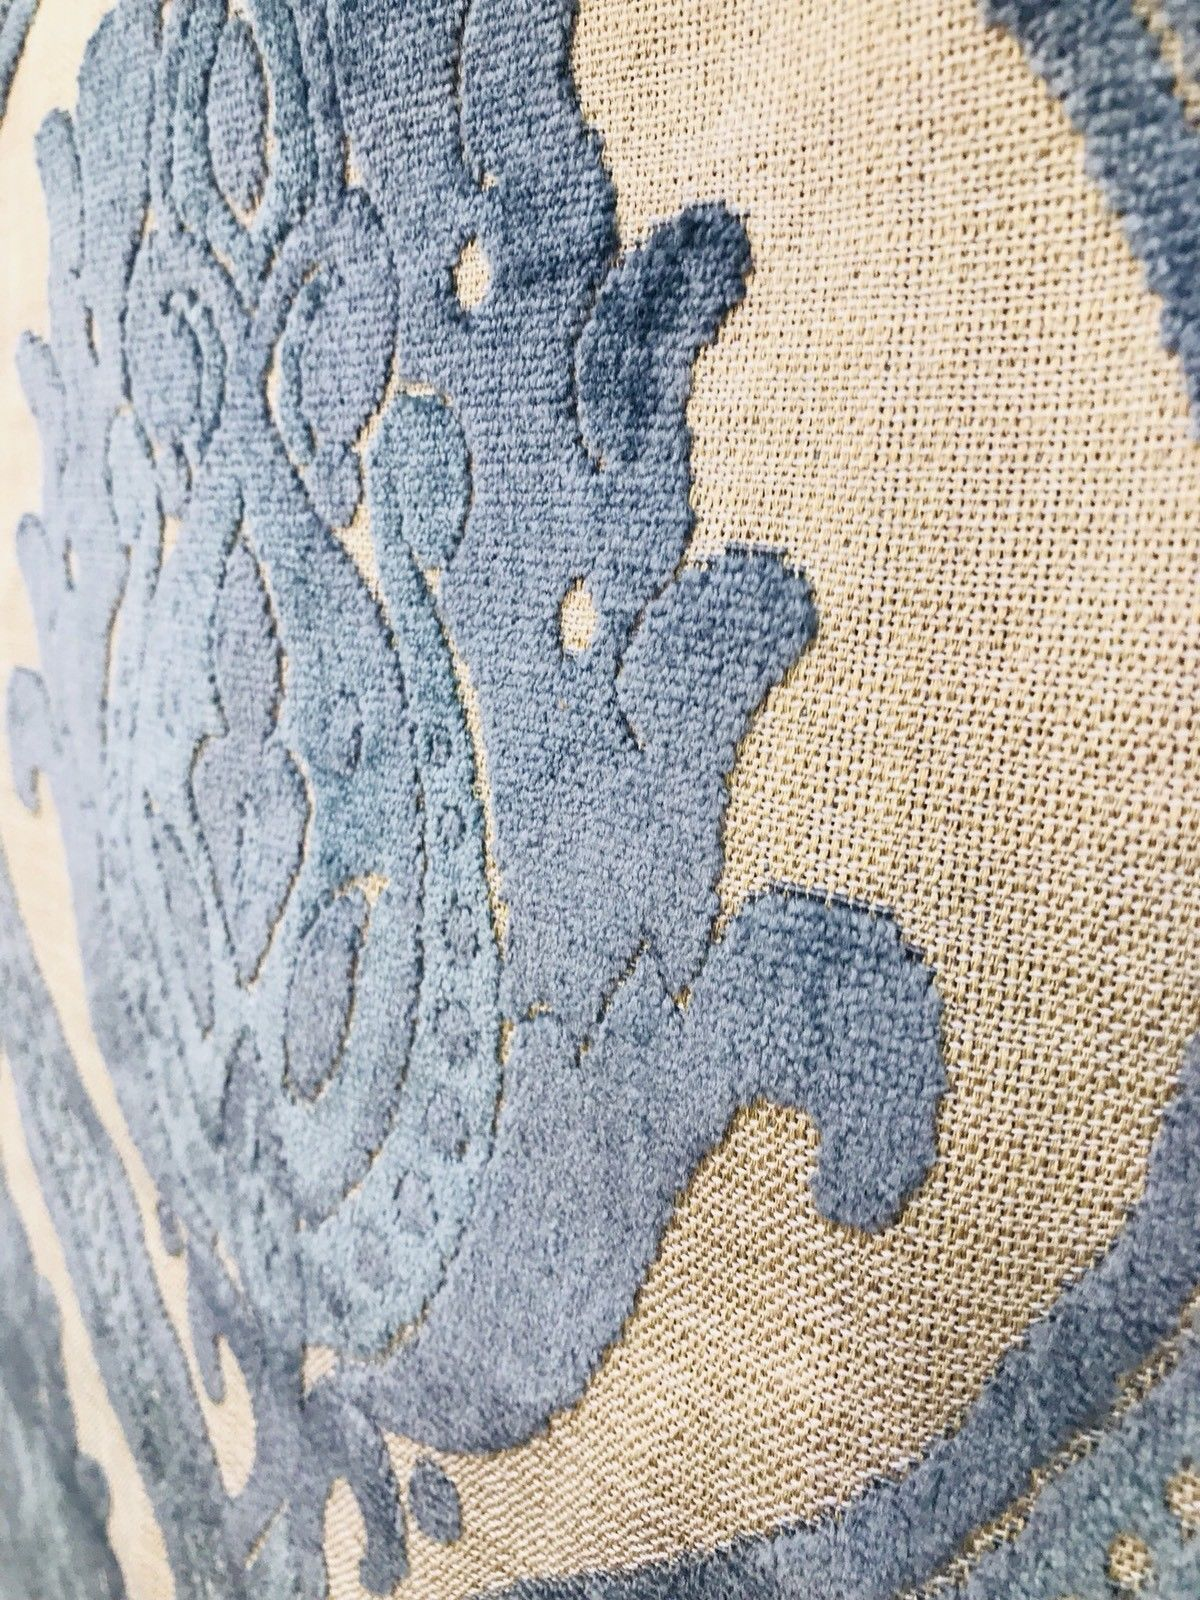 SWATCH Designer Italian Burnout Damask Chenille Velvet Linen Fabric Upholstery - Fancy Styles Fabric Boutique